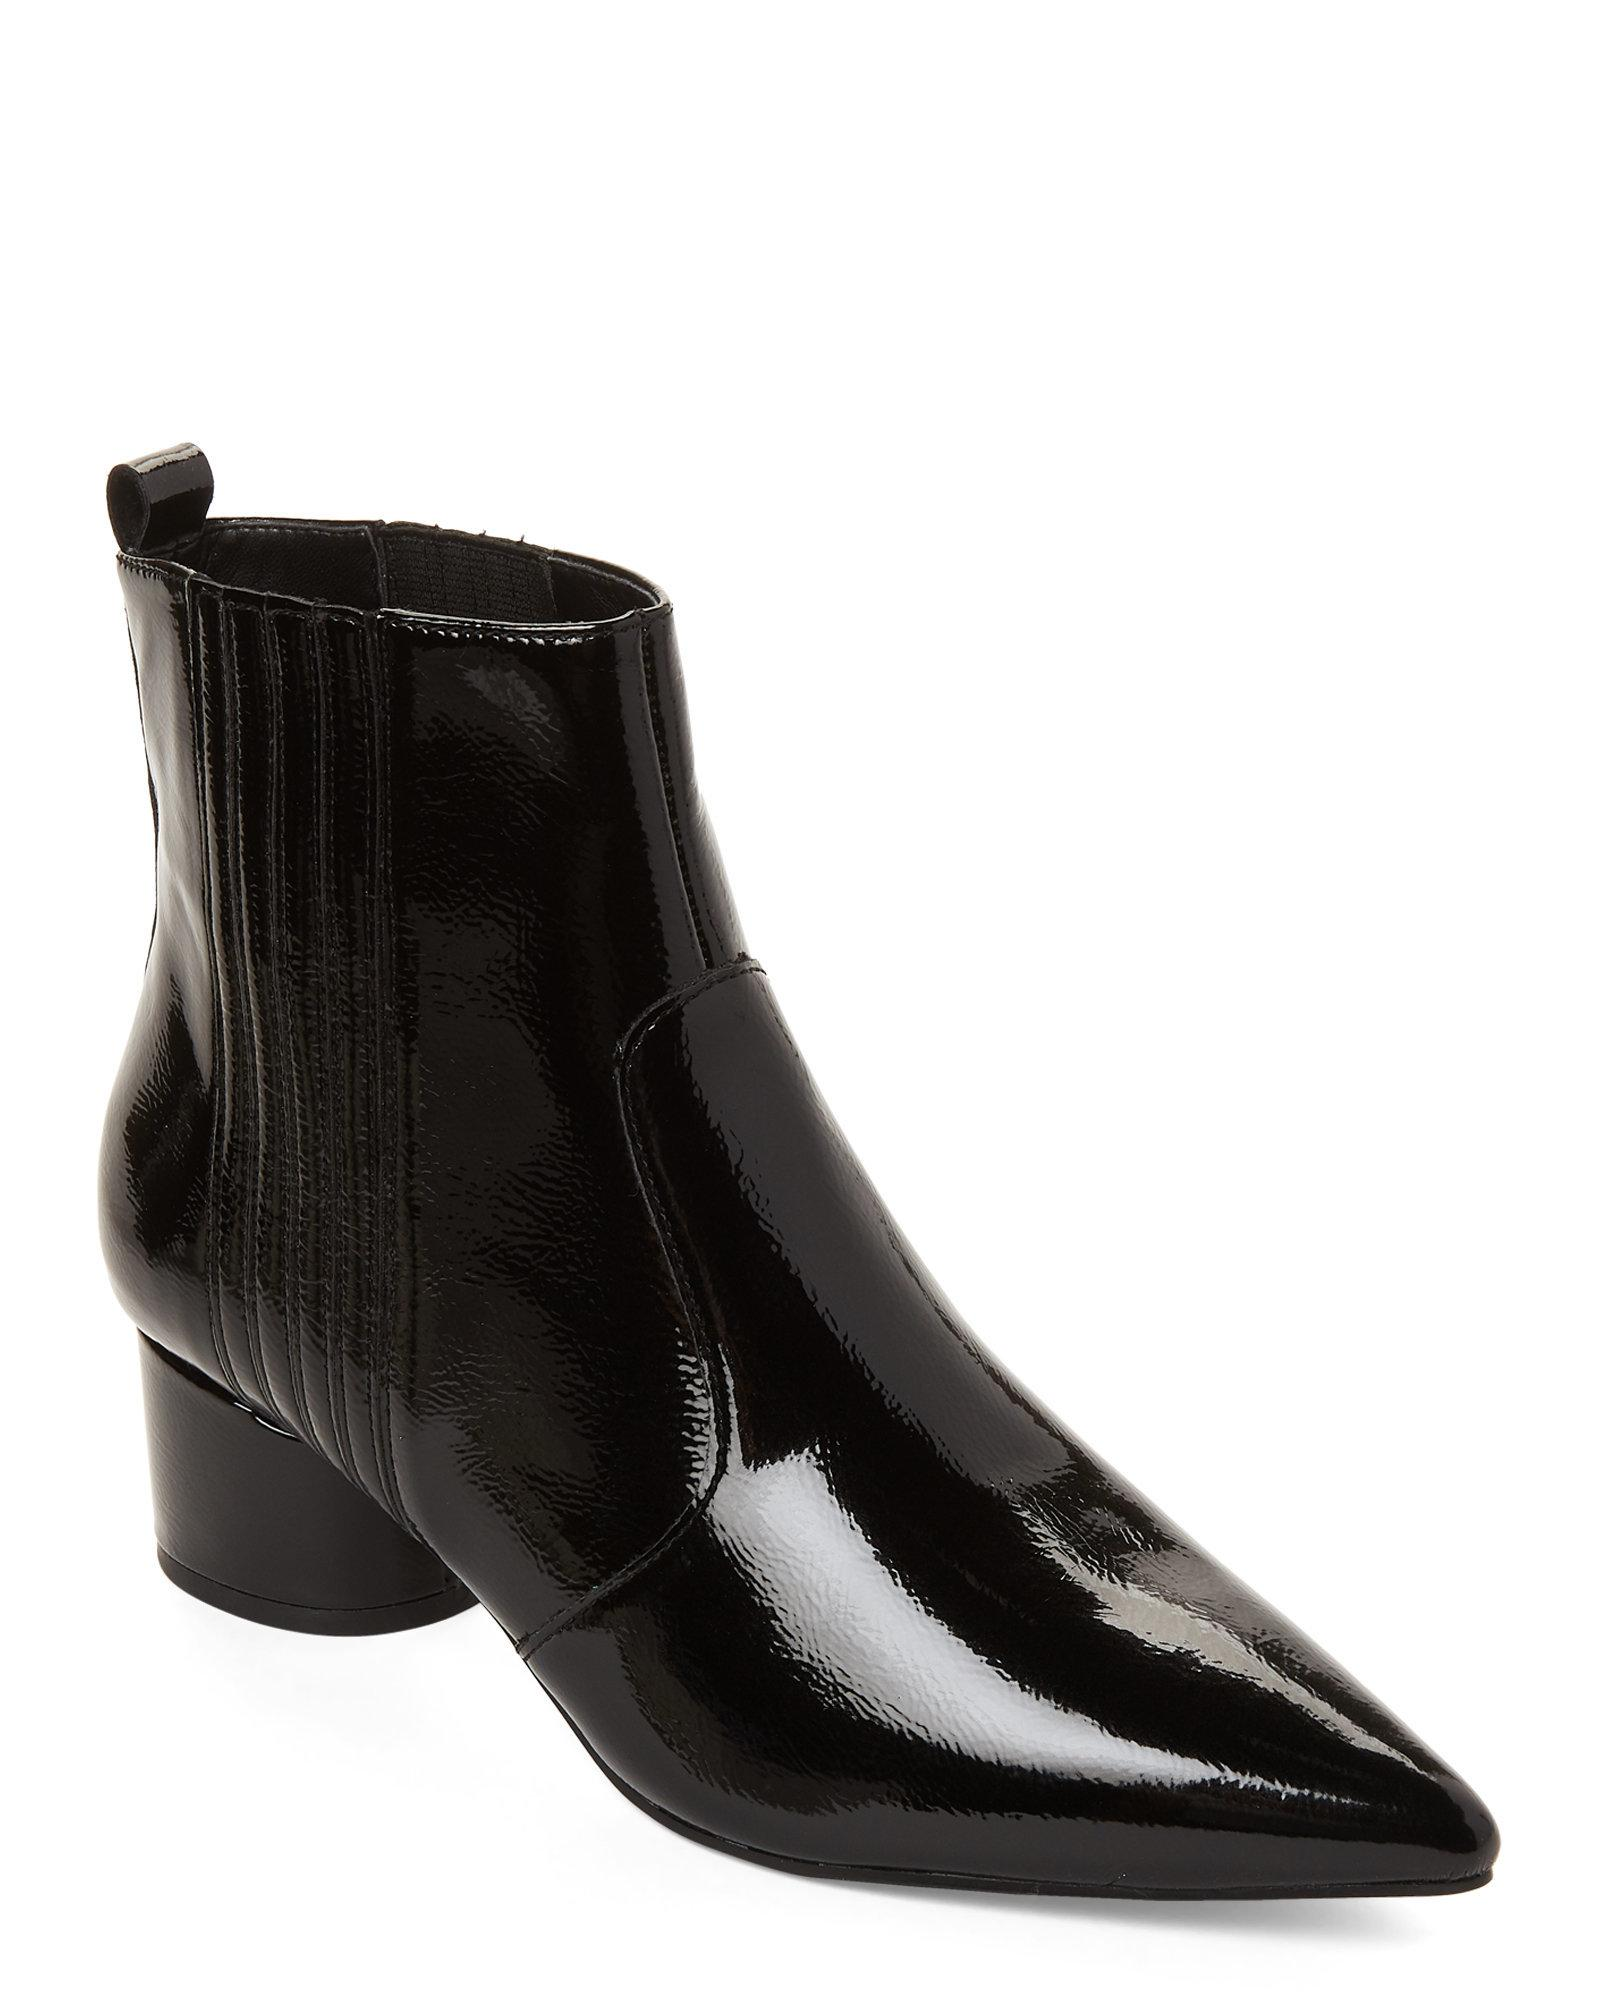 240dfe3db0f Lyst - Kendall + Kylie Black Lalia Patent Leather Ankle Boots in Black